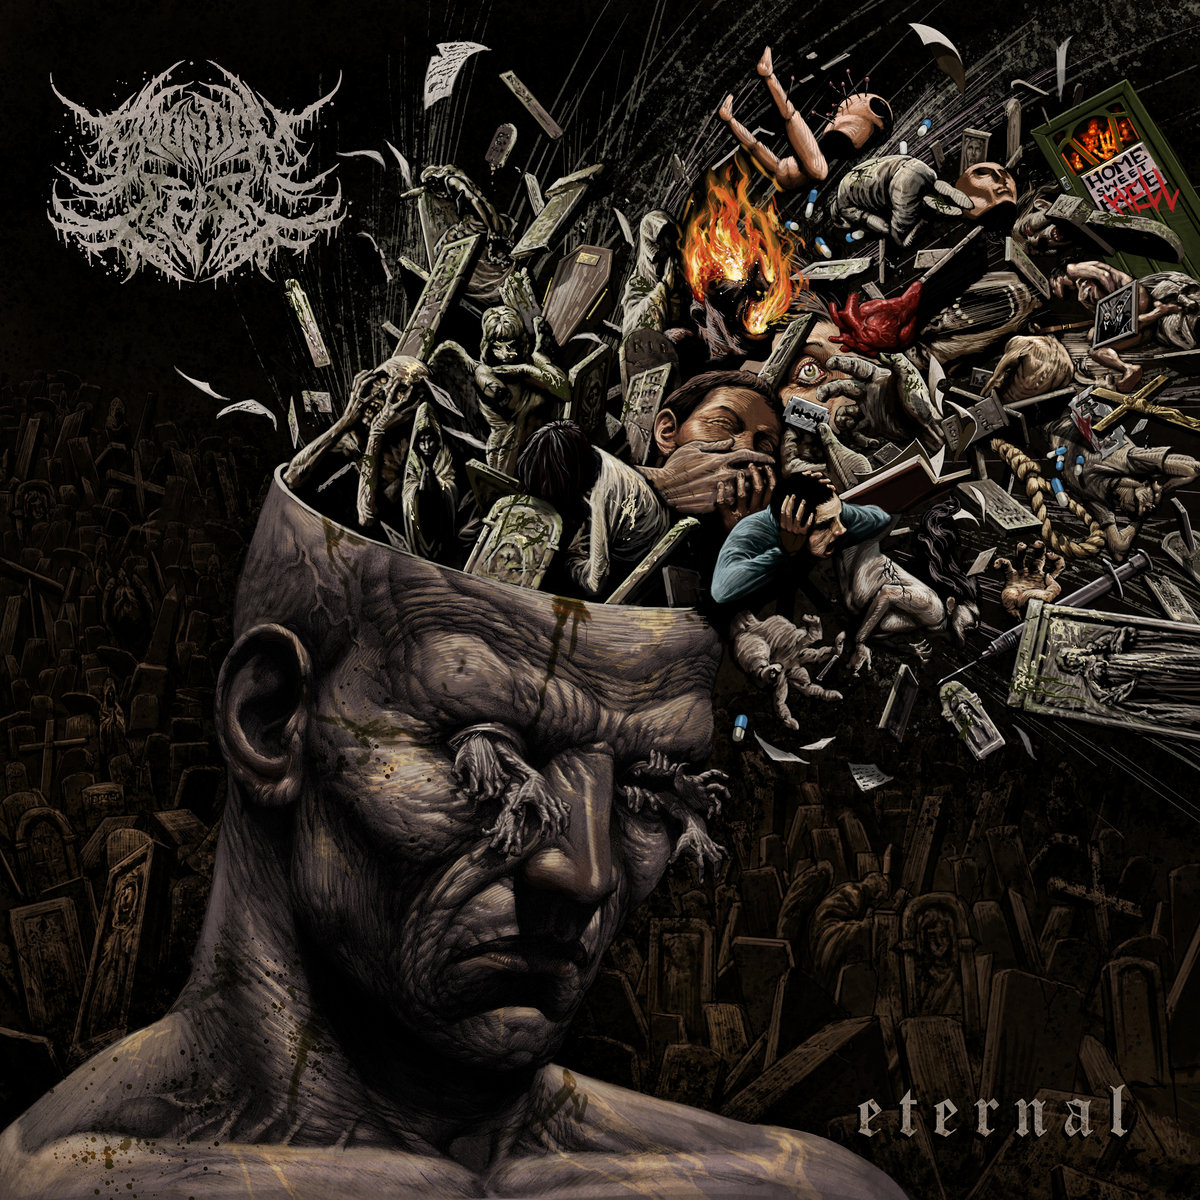 Eternal Bound in Fear Album Cover Artwork 2021